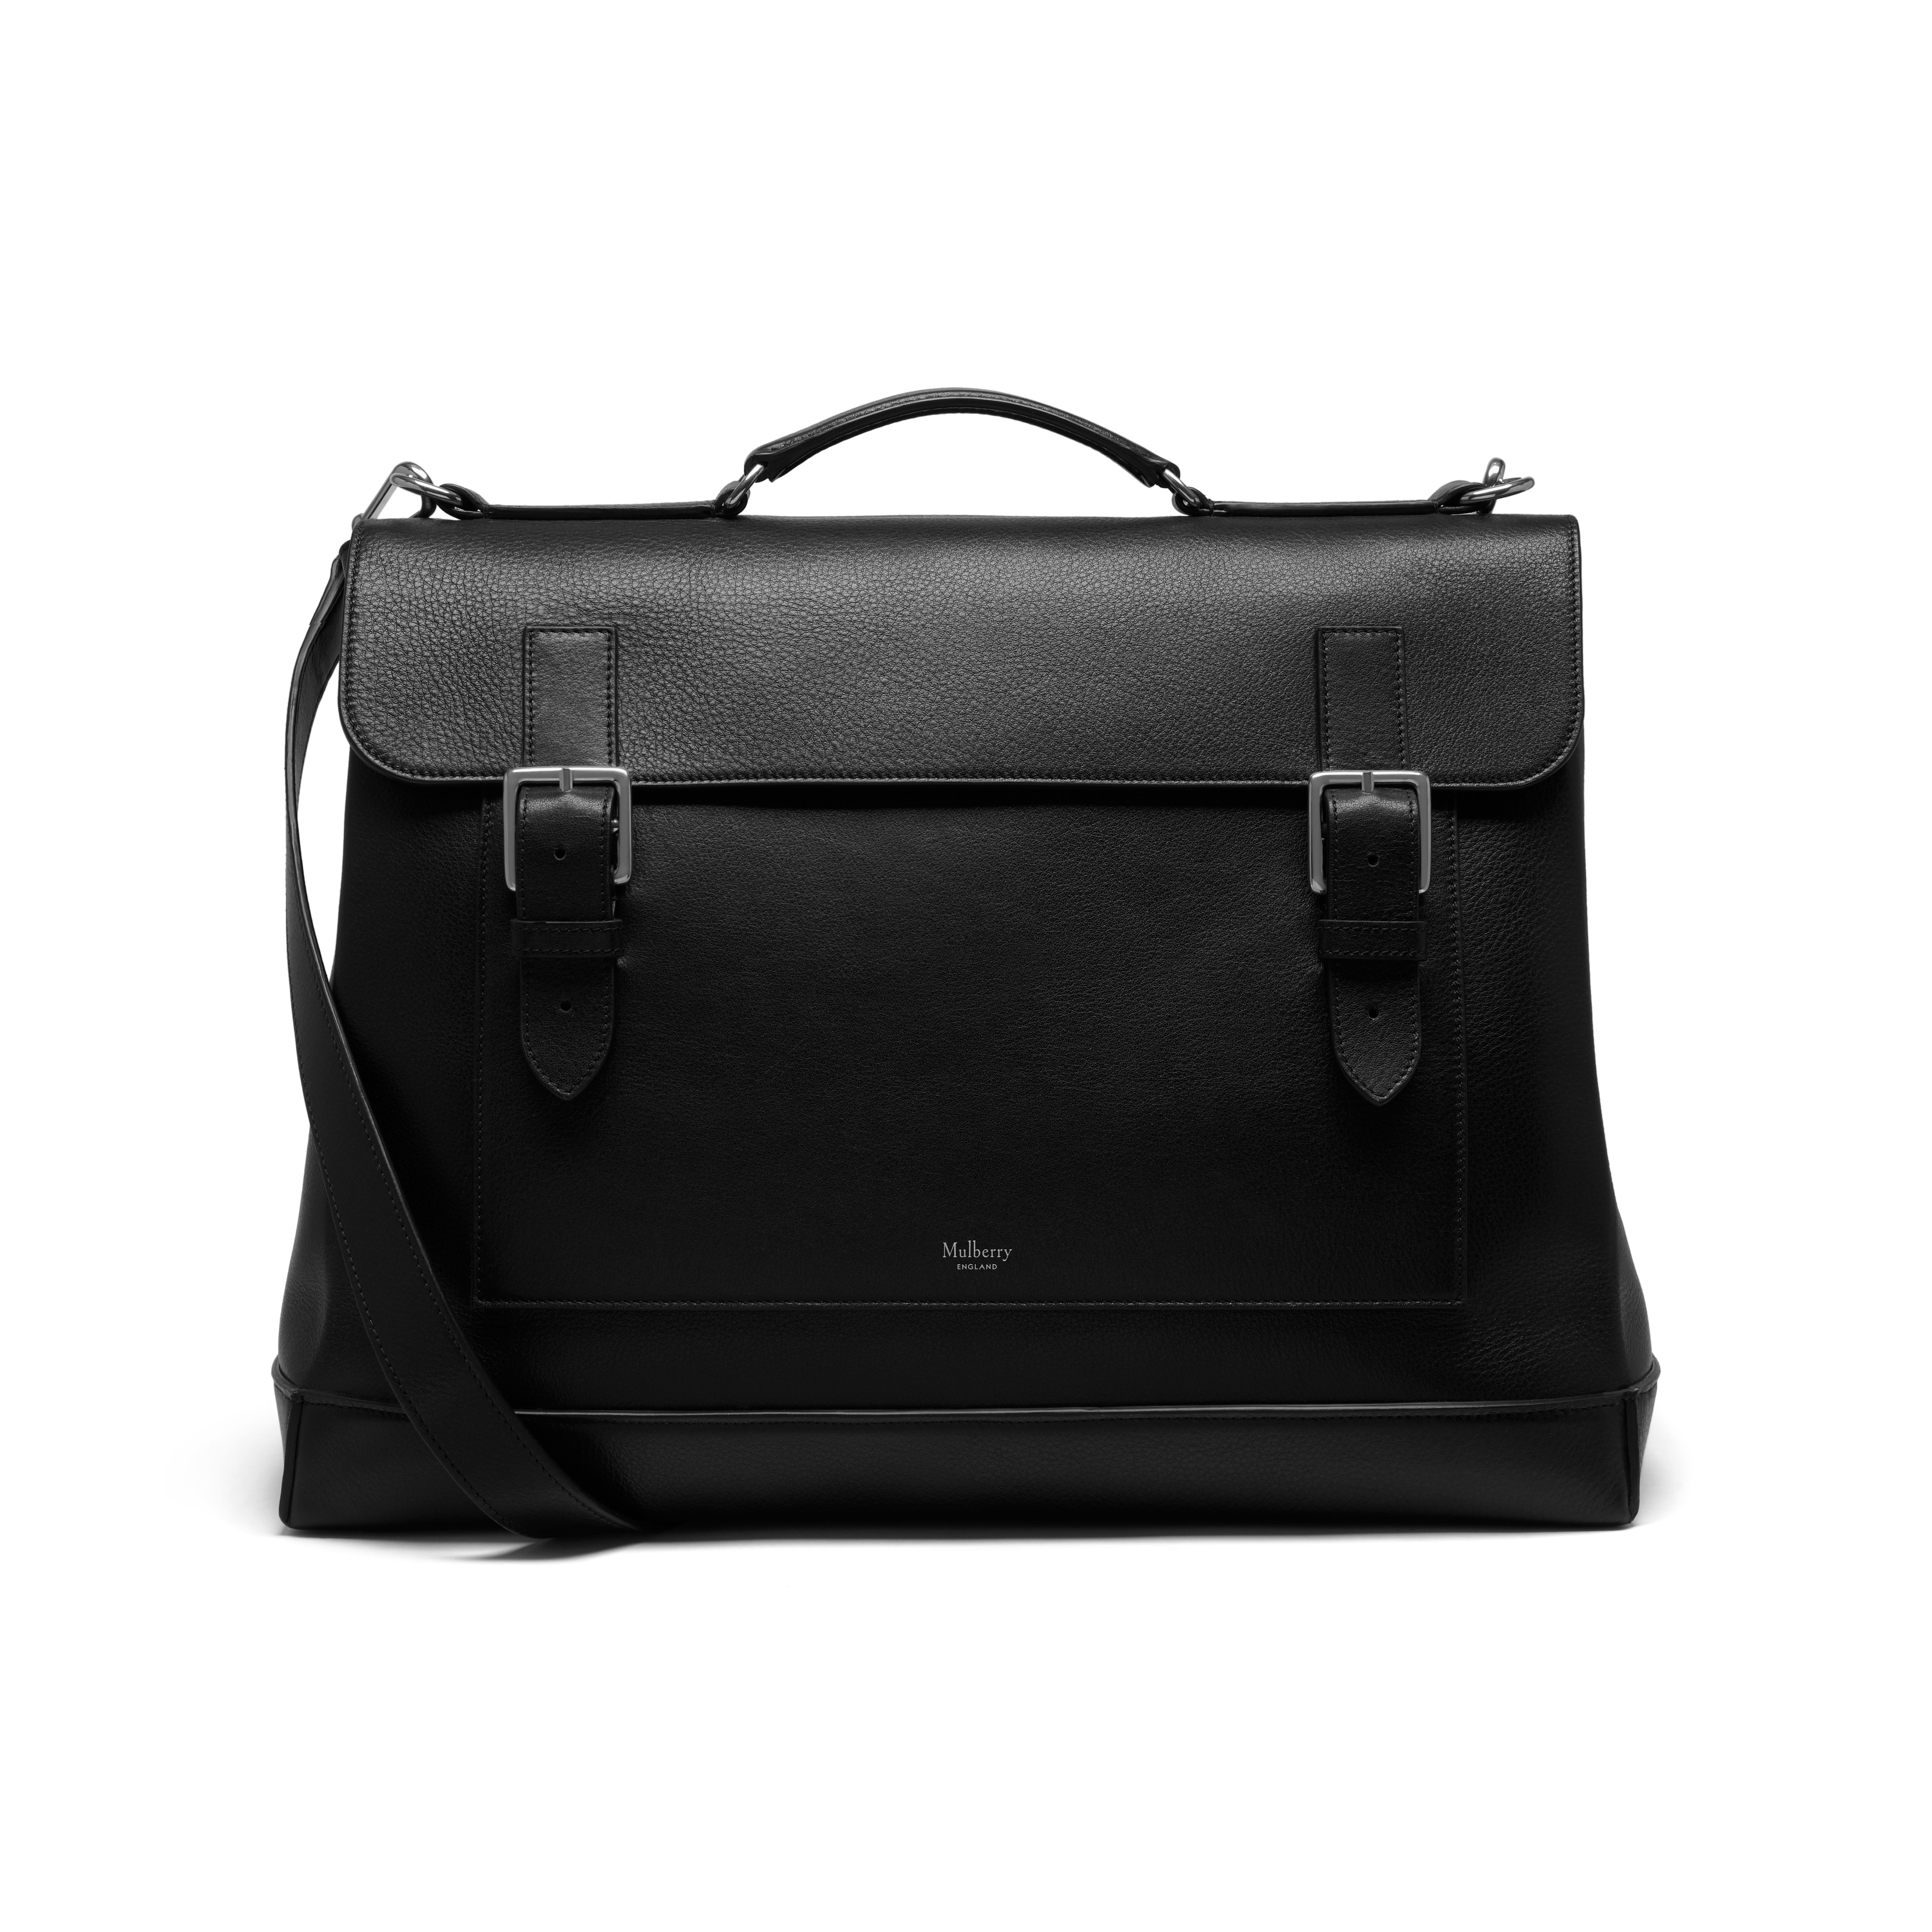 40d08de148 Shop the Chiltern Travel Bag in Black Natural Grain Leather at Mulberry.com.  The Chiltern Travel Bag has a nod to vintage school satchels with its  double ...